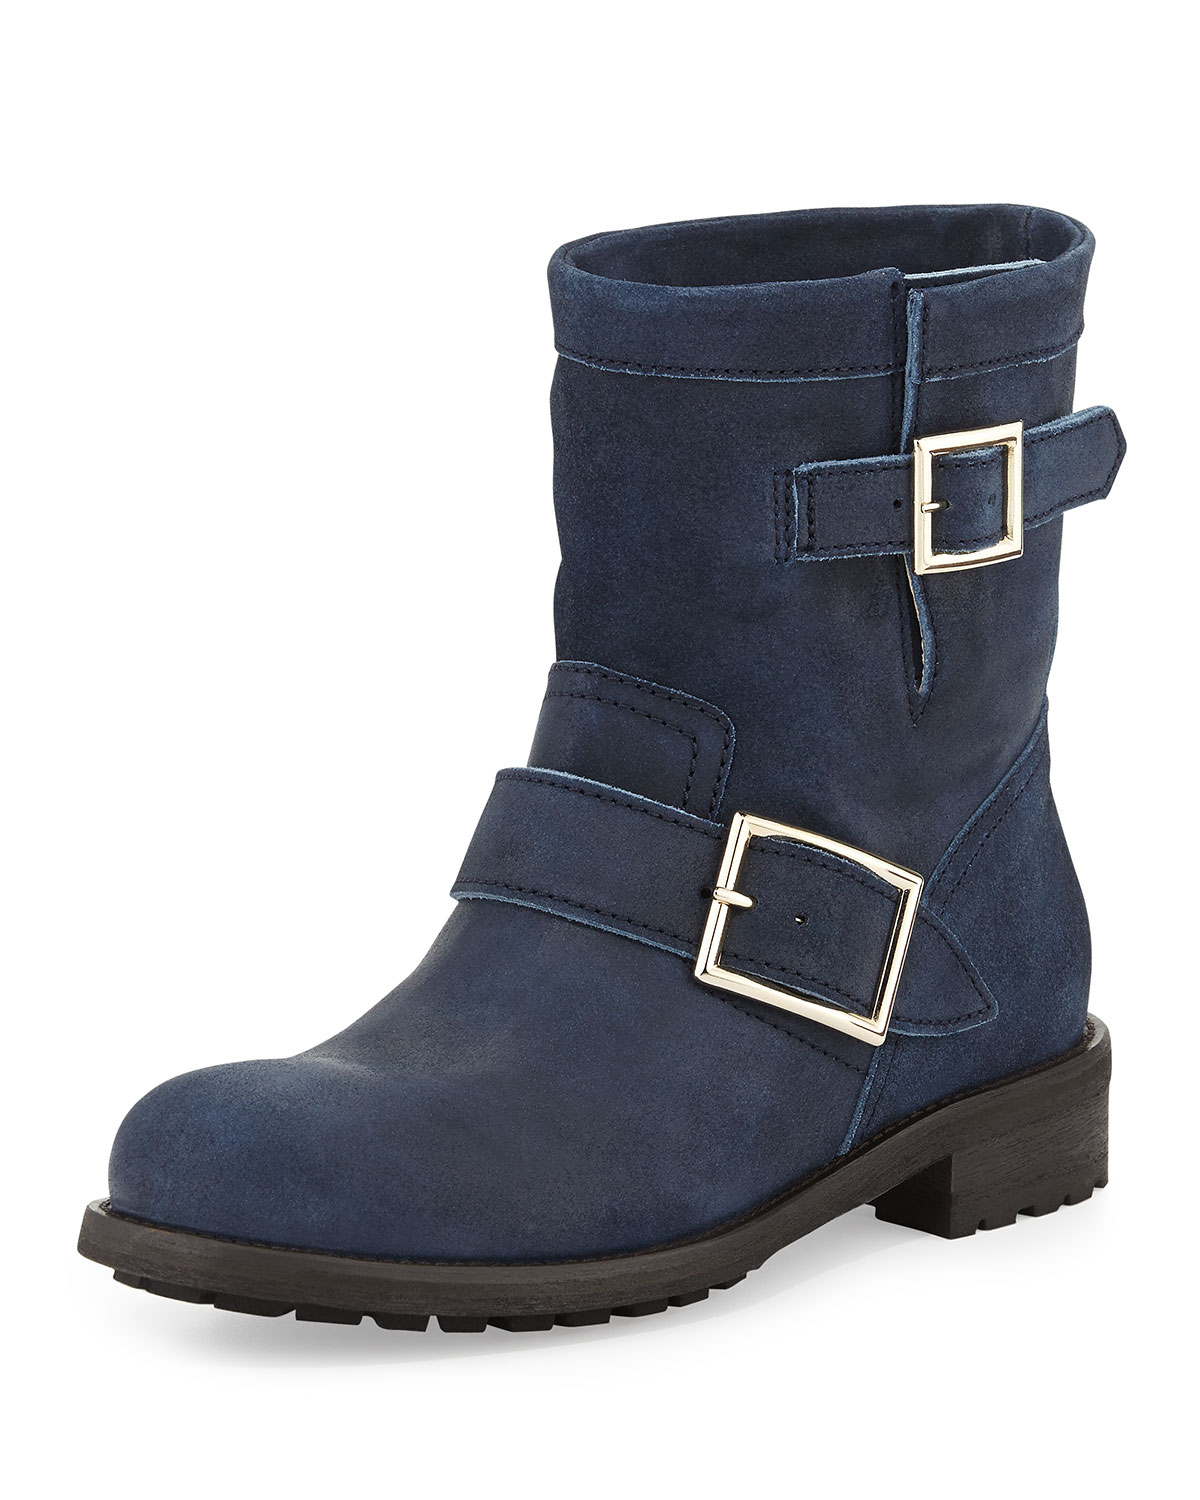 414bfbef788 Jimmy Choo Youth Short Suede Biker Boot, Blue Gray | Neiman Marcus